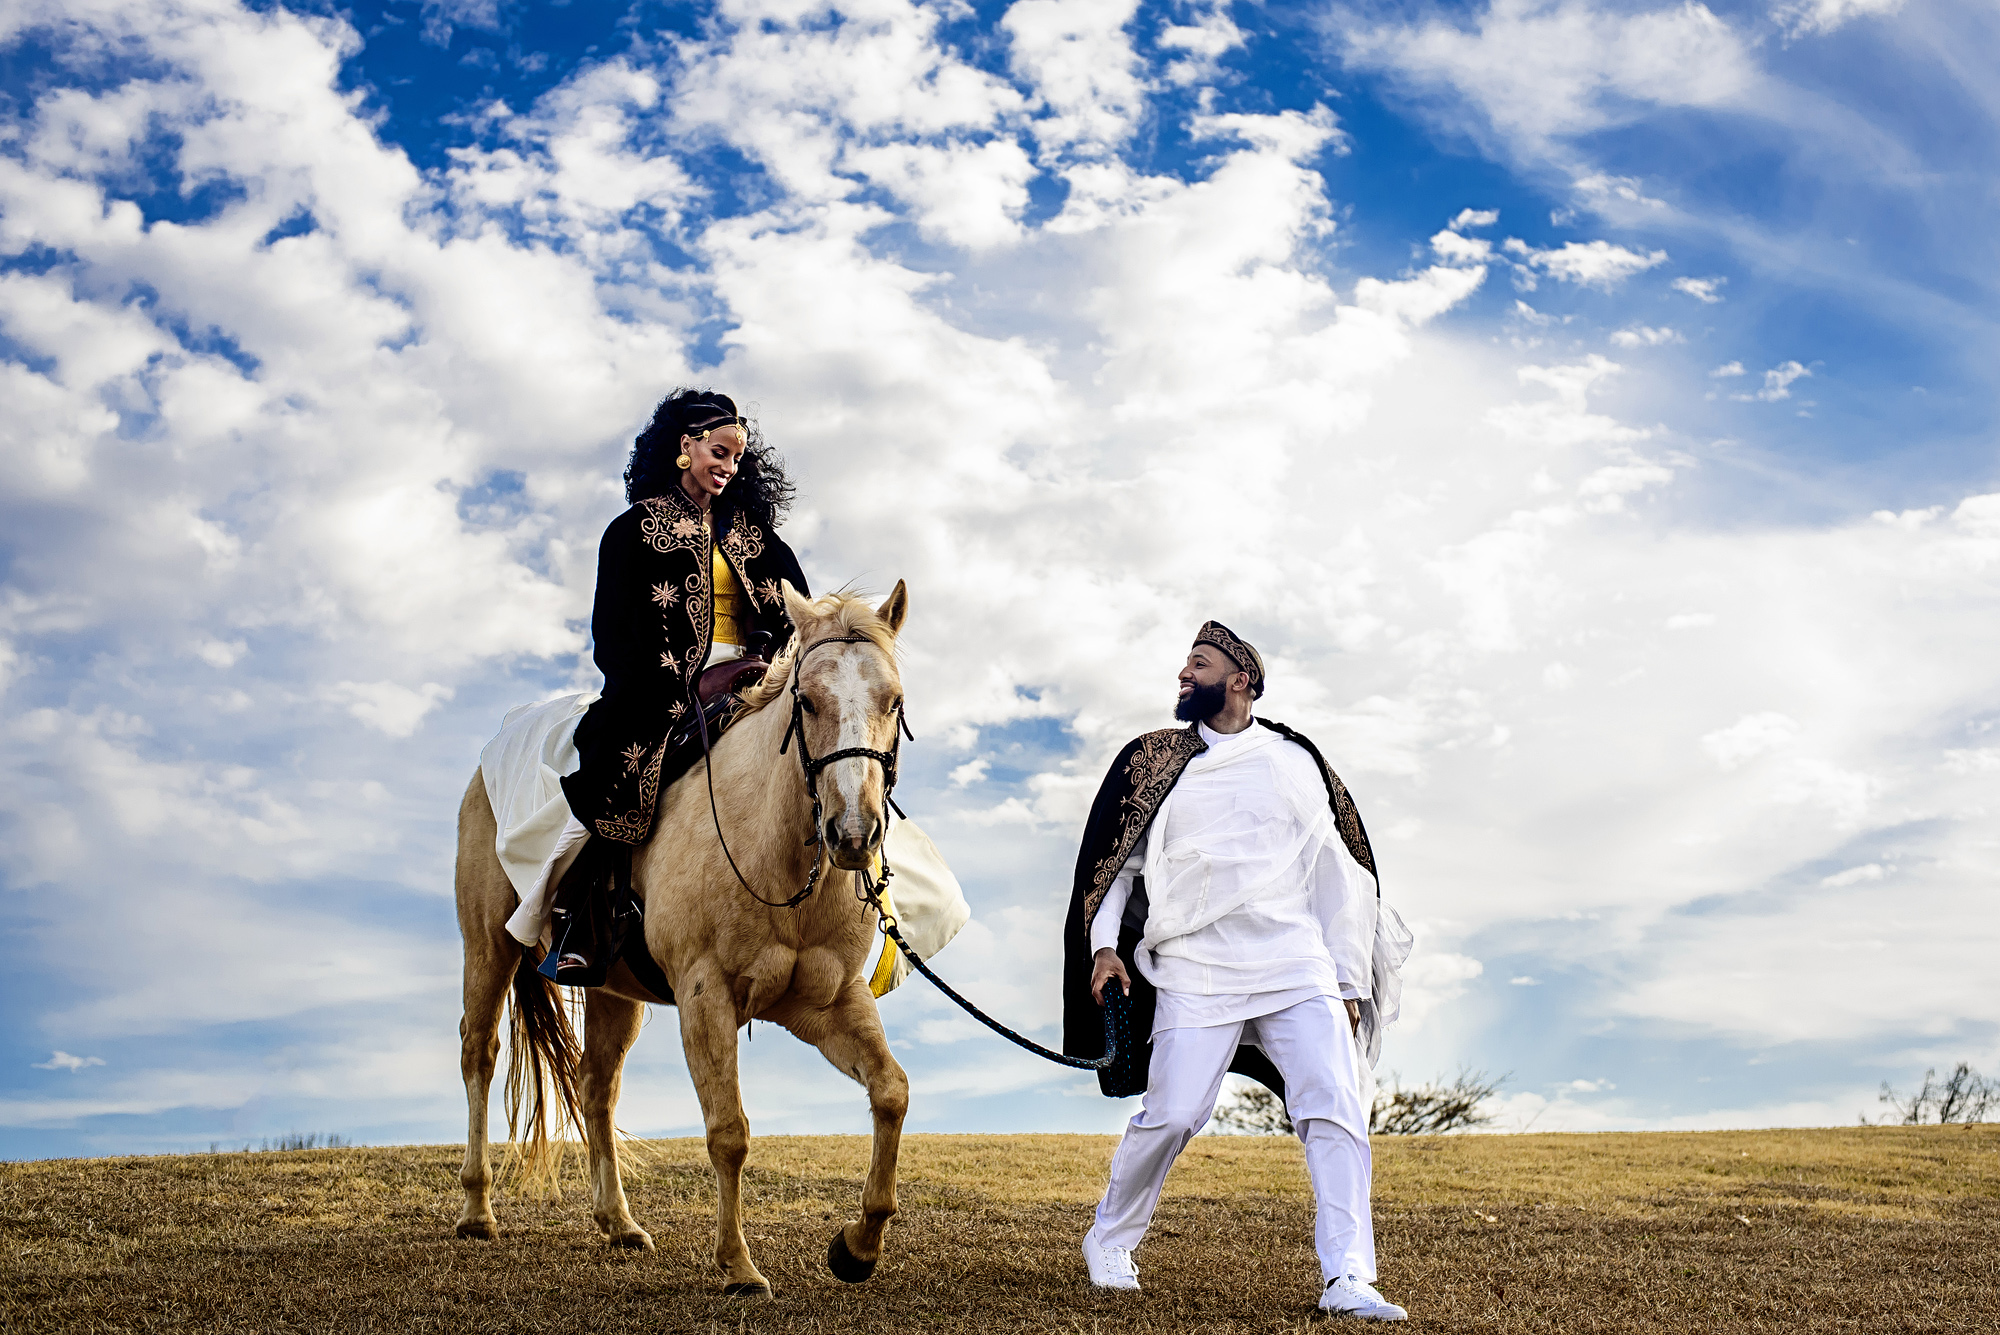 Bride on horseback with groom in muslim attire - photo by Joshua Dwain Photography